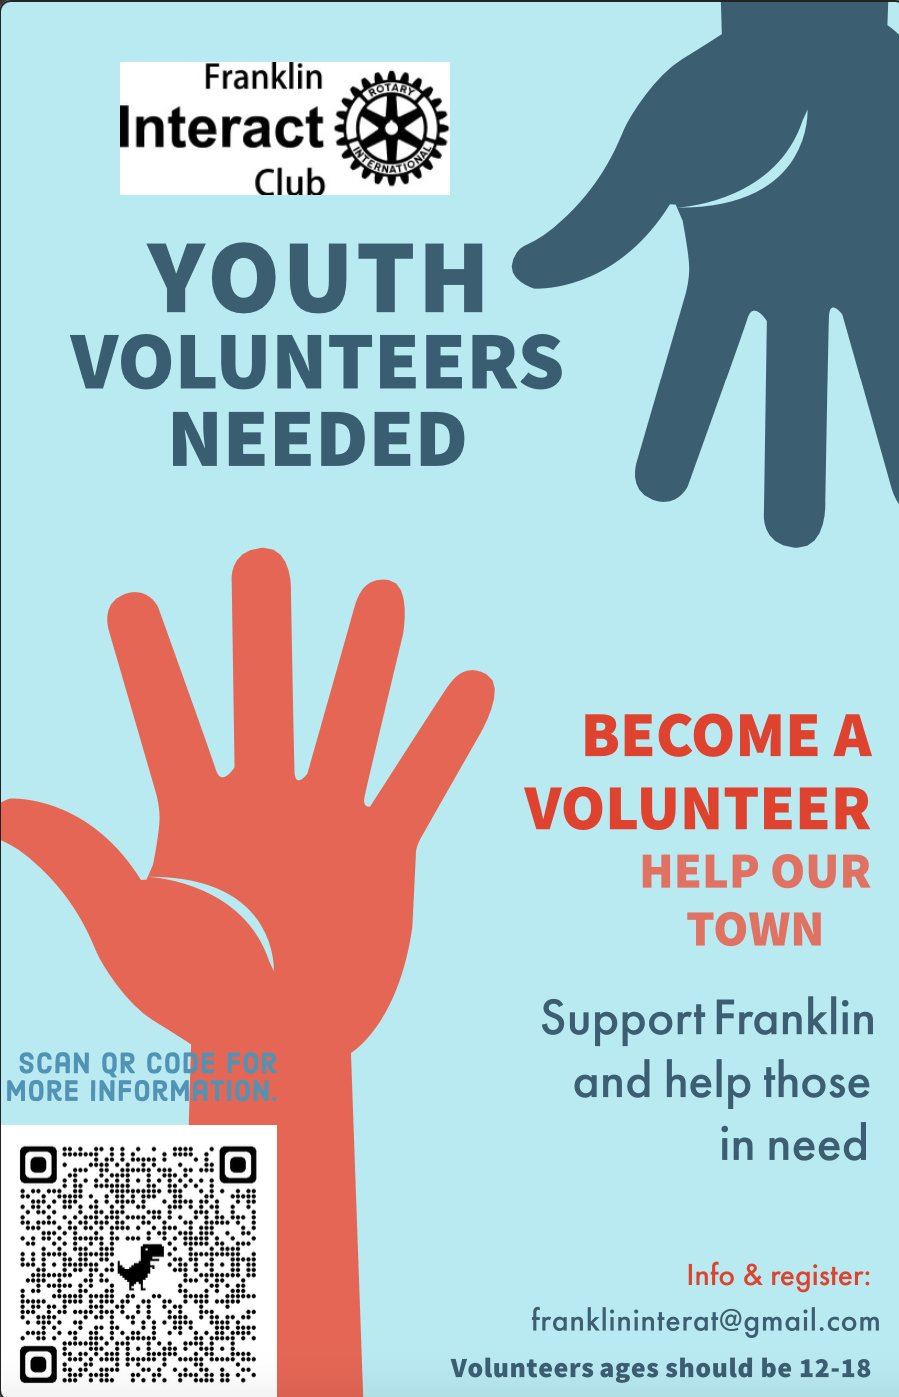 Franklin Interact Club is looking for new members. Could that be you?